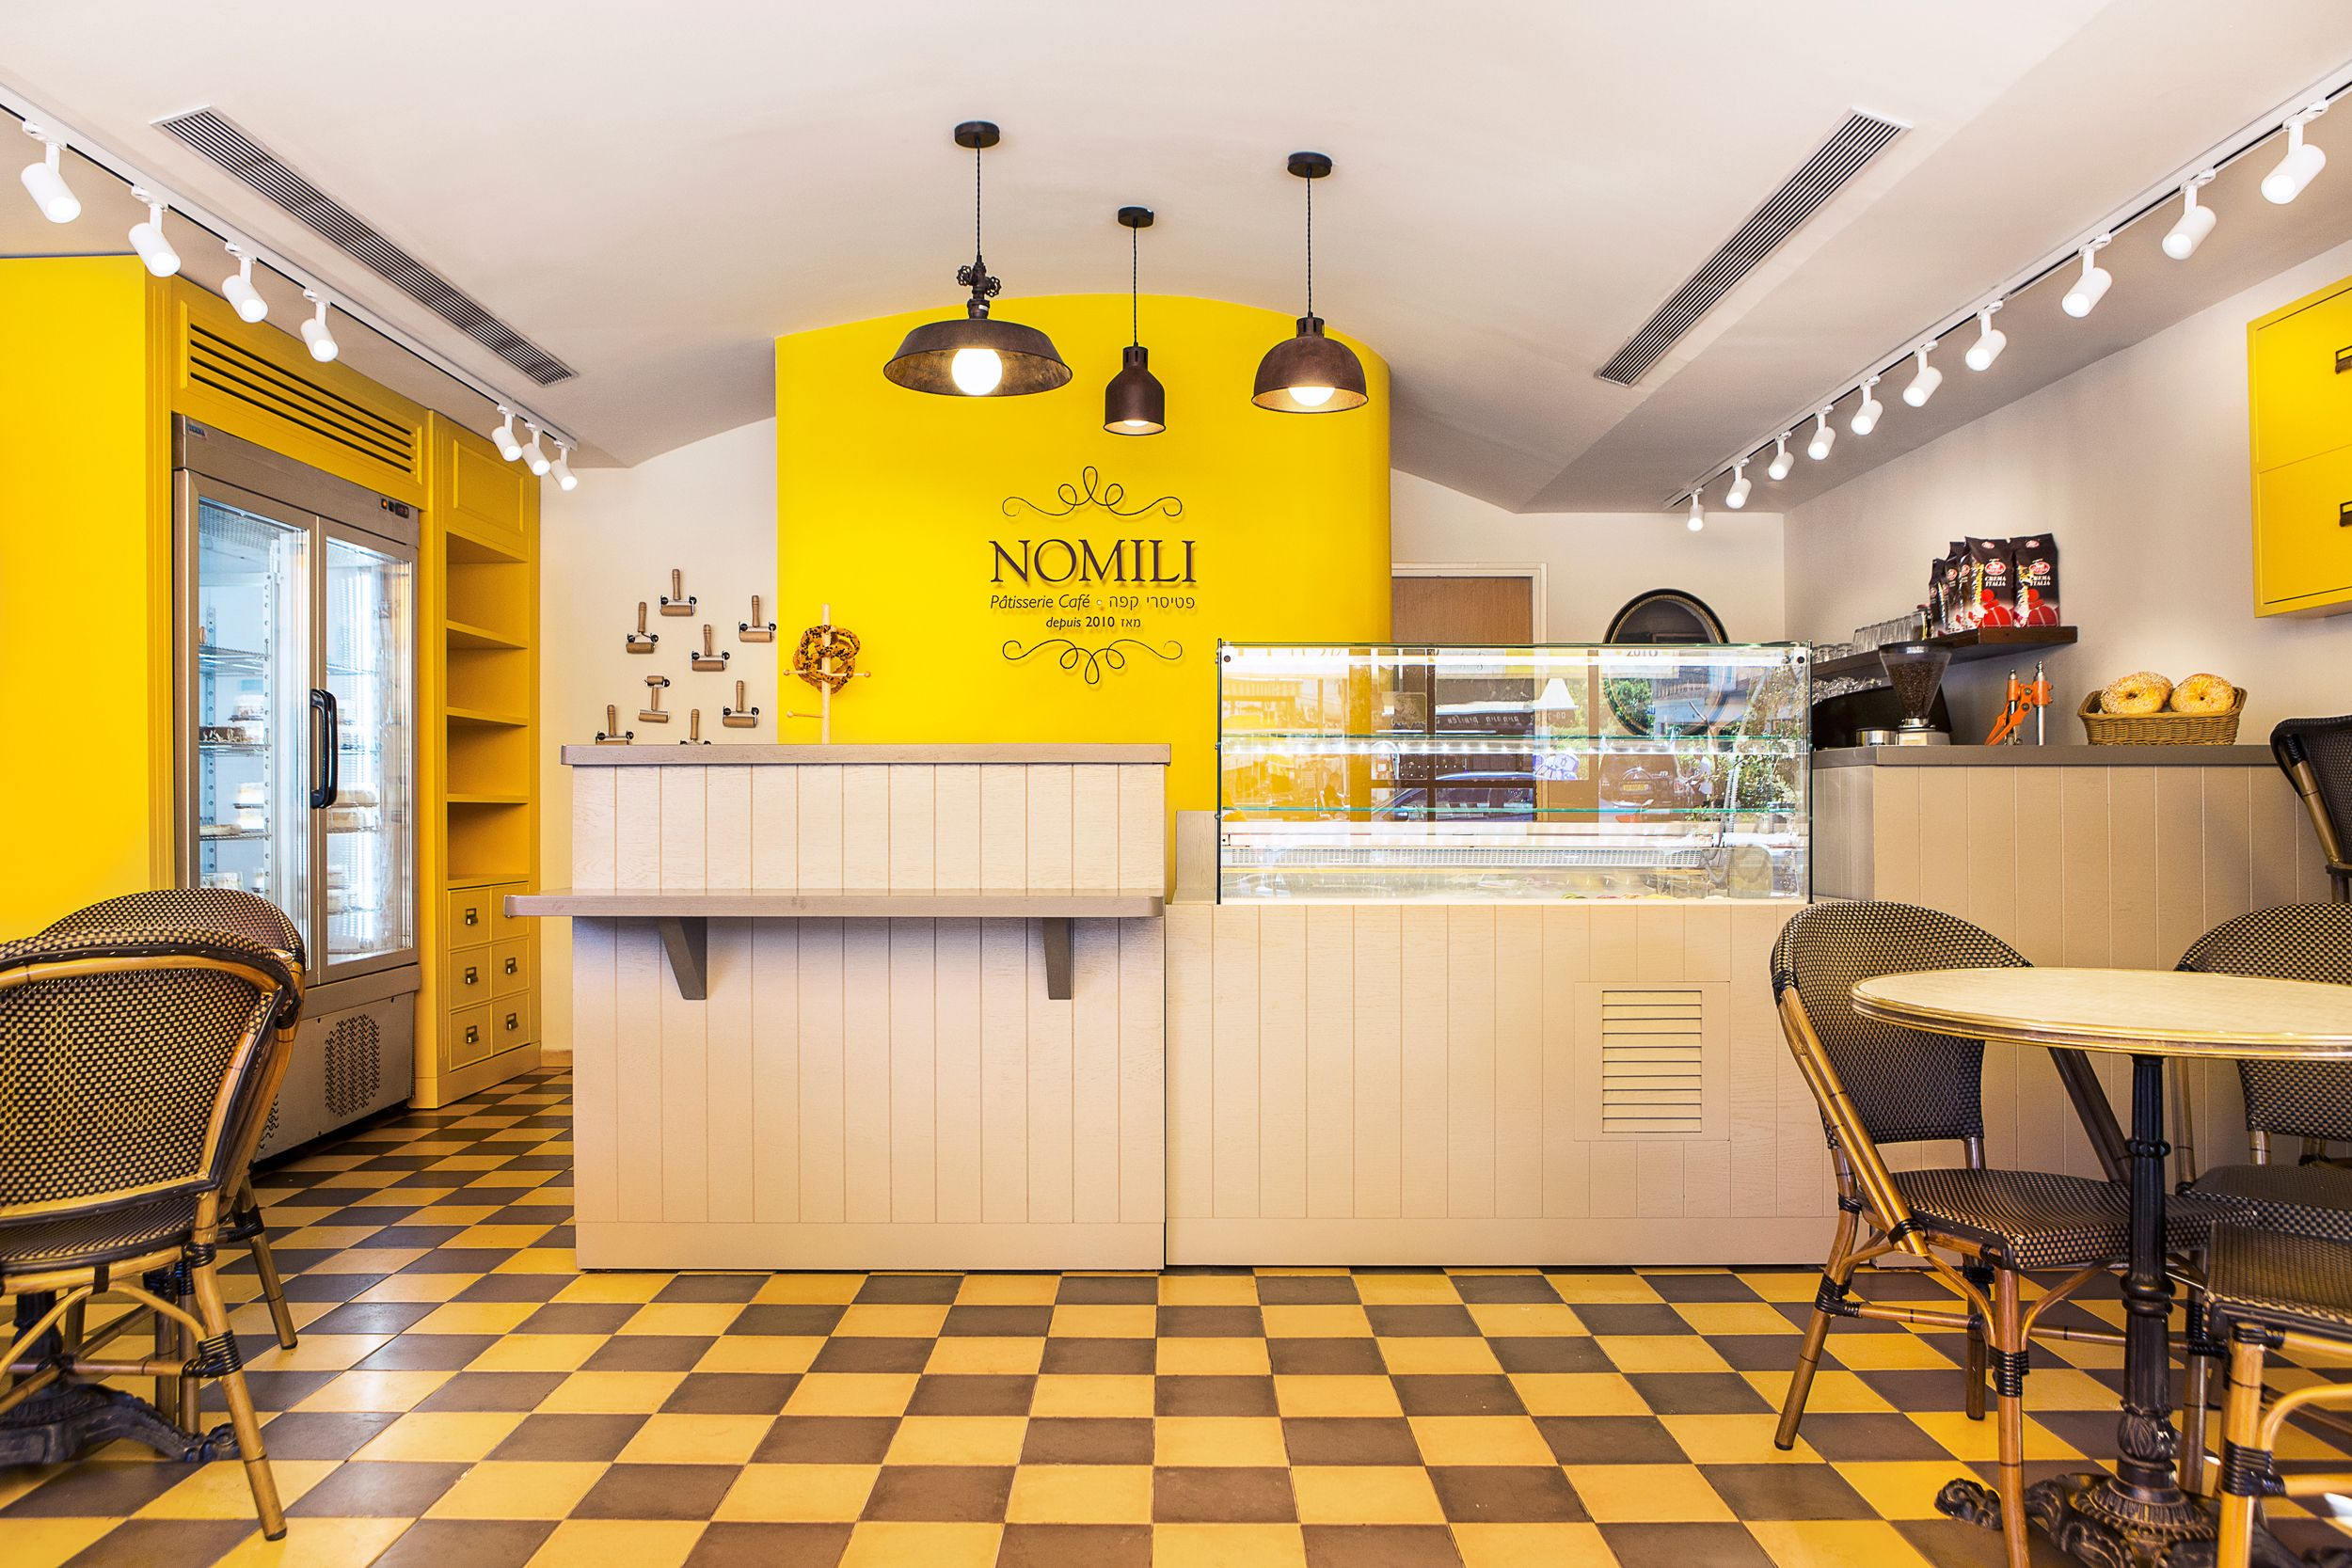 nomili patisserie coffee shop designeddana shaked yellow wall